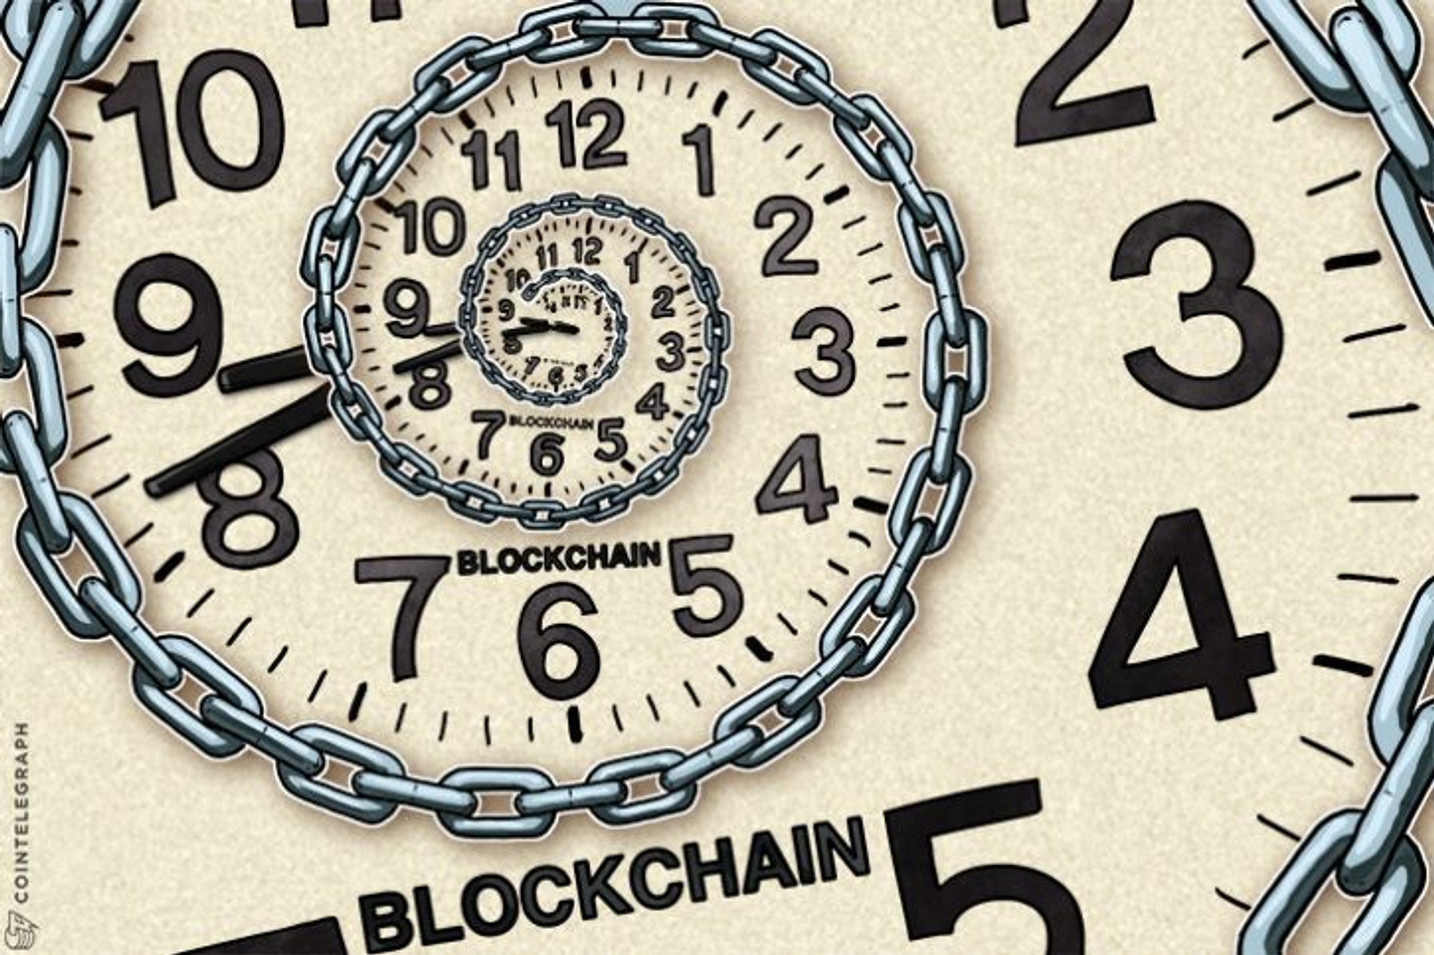 House of Lords Recommends Exploration of Blockchain Technology to the British Government